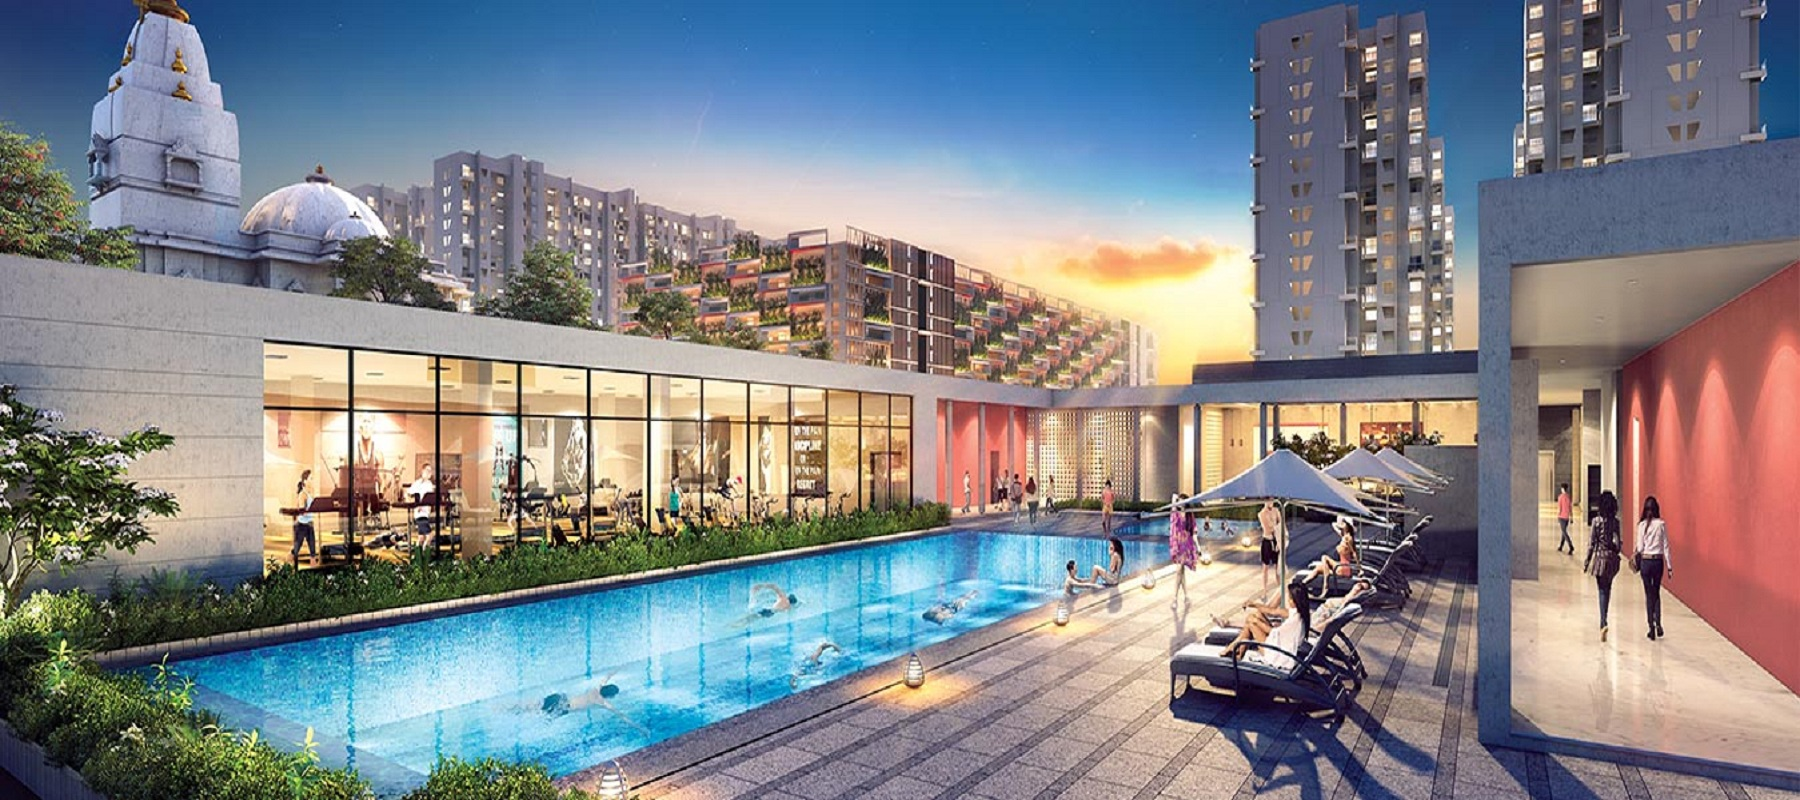 lodha palava aquaville series aurora a and d project amenities features17